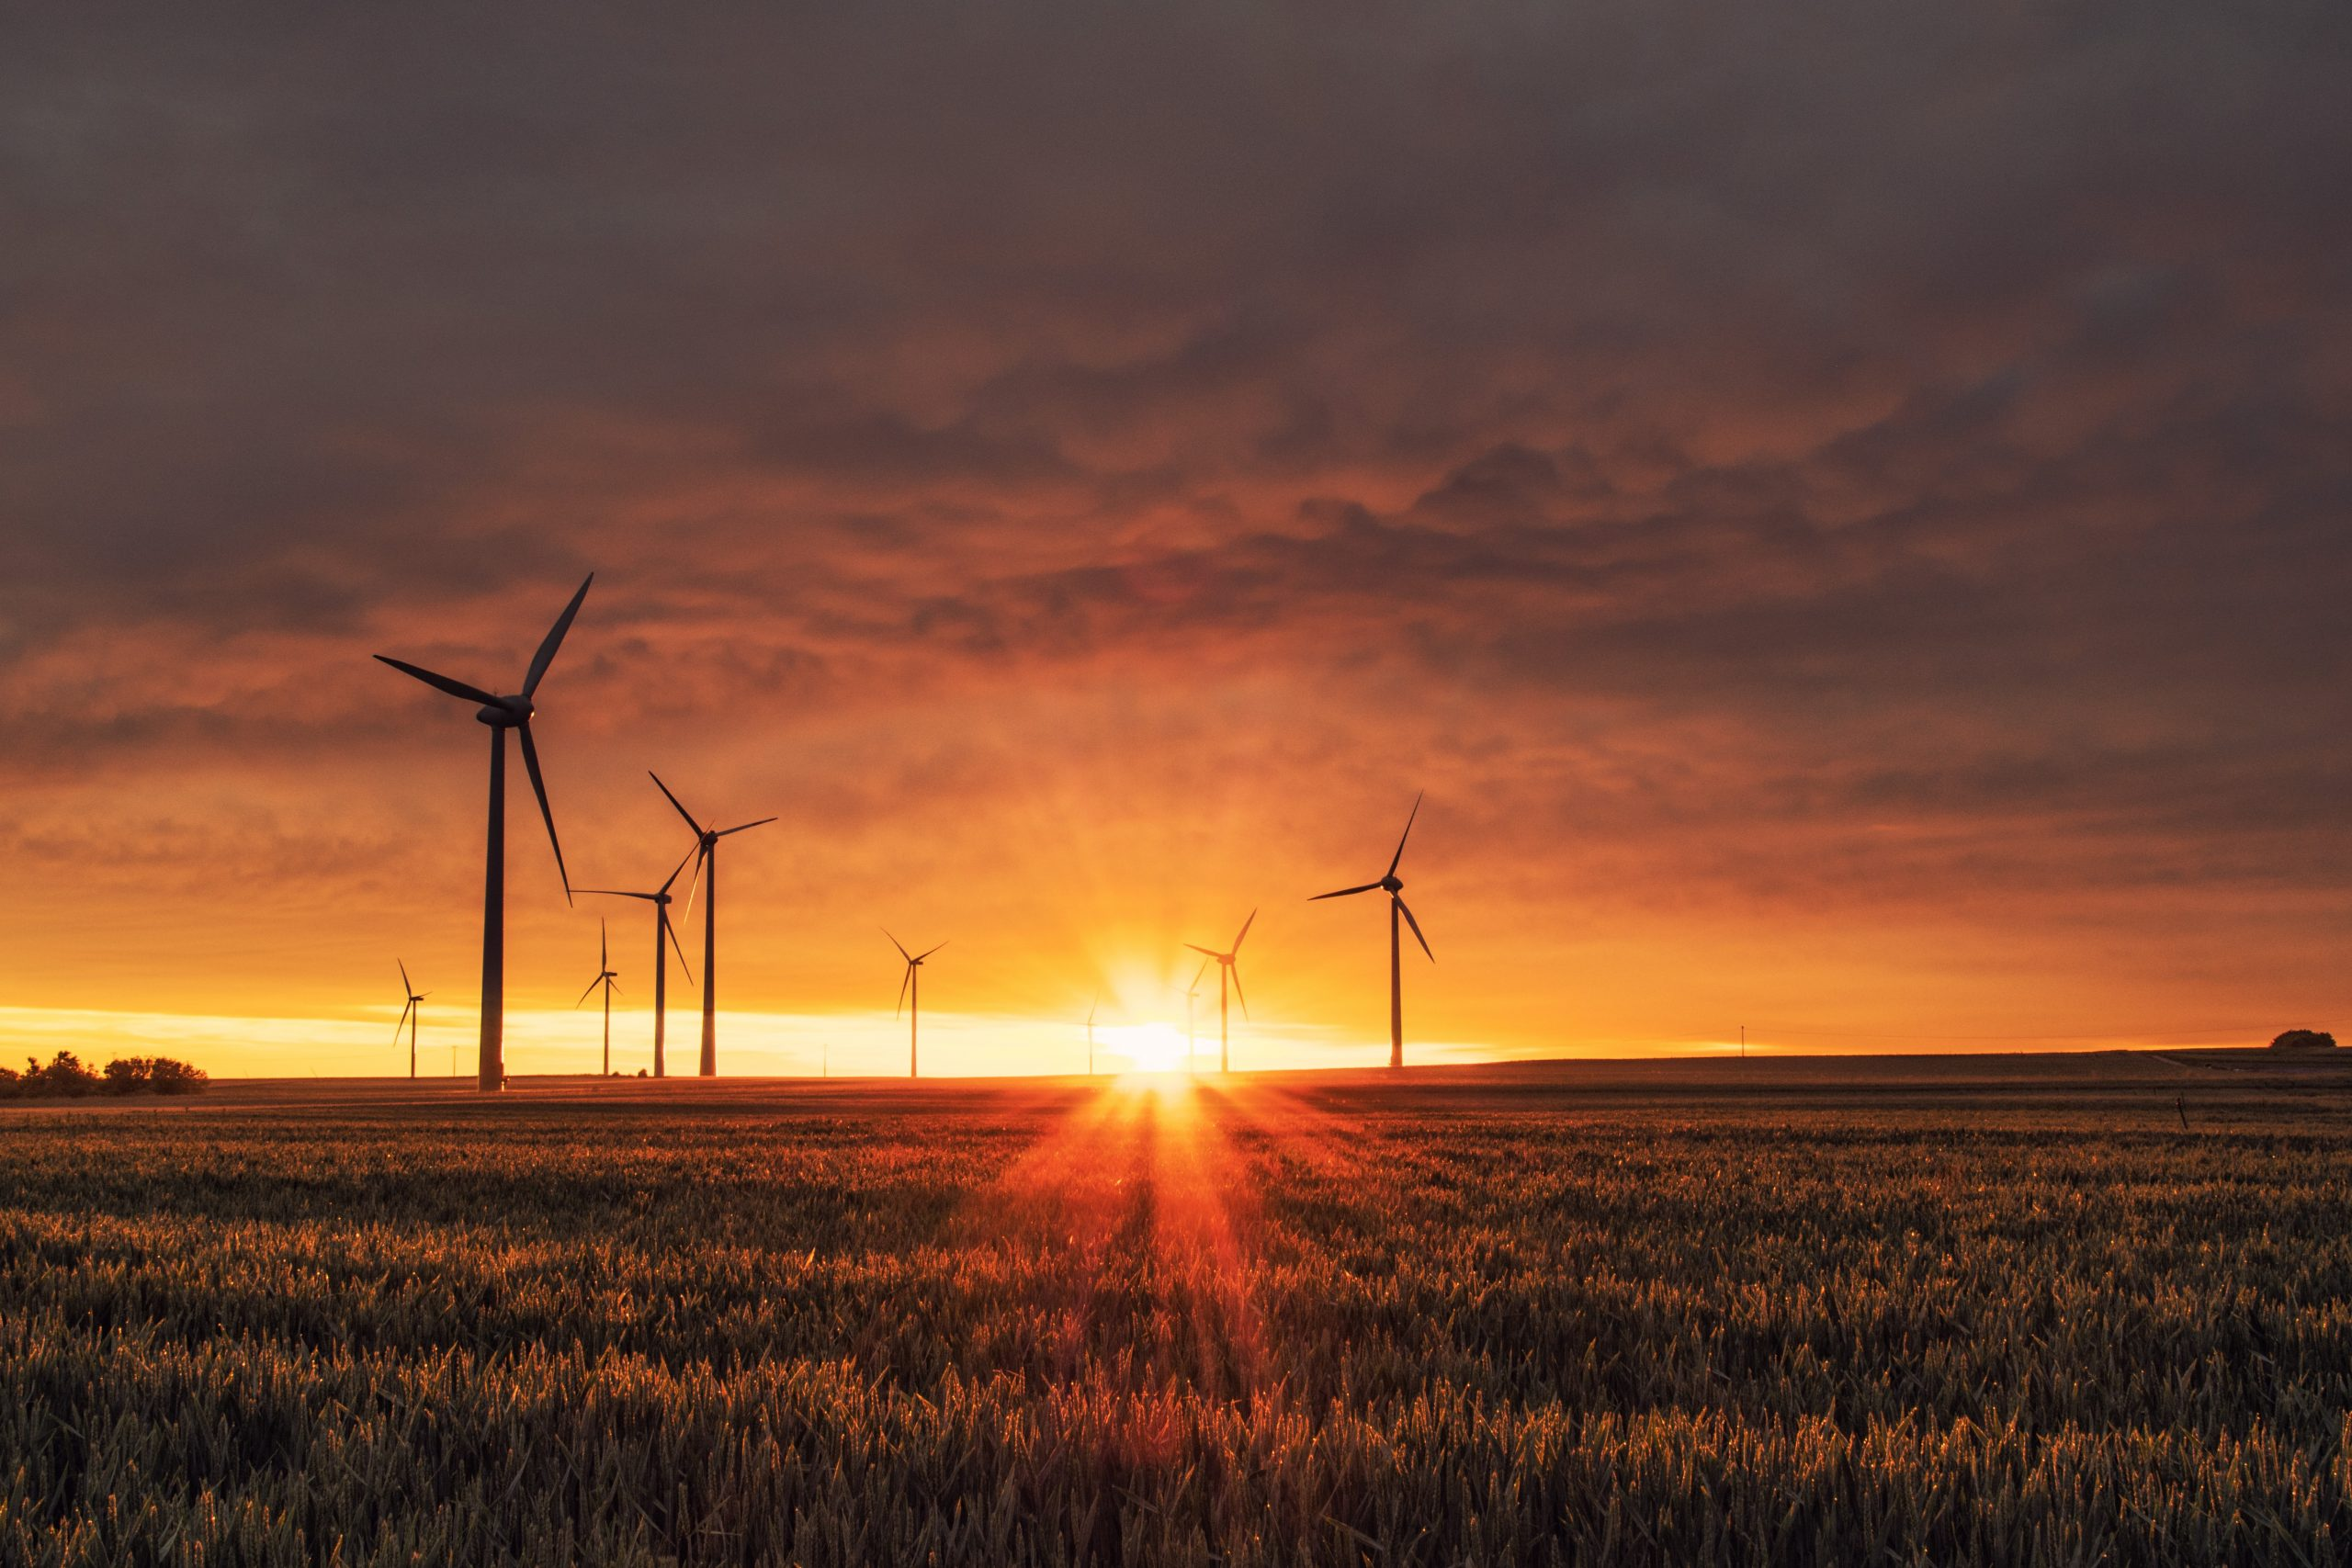 A photo shoes wind turbines silhouetted against a bright orange sunset atop a hill.